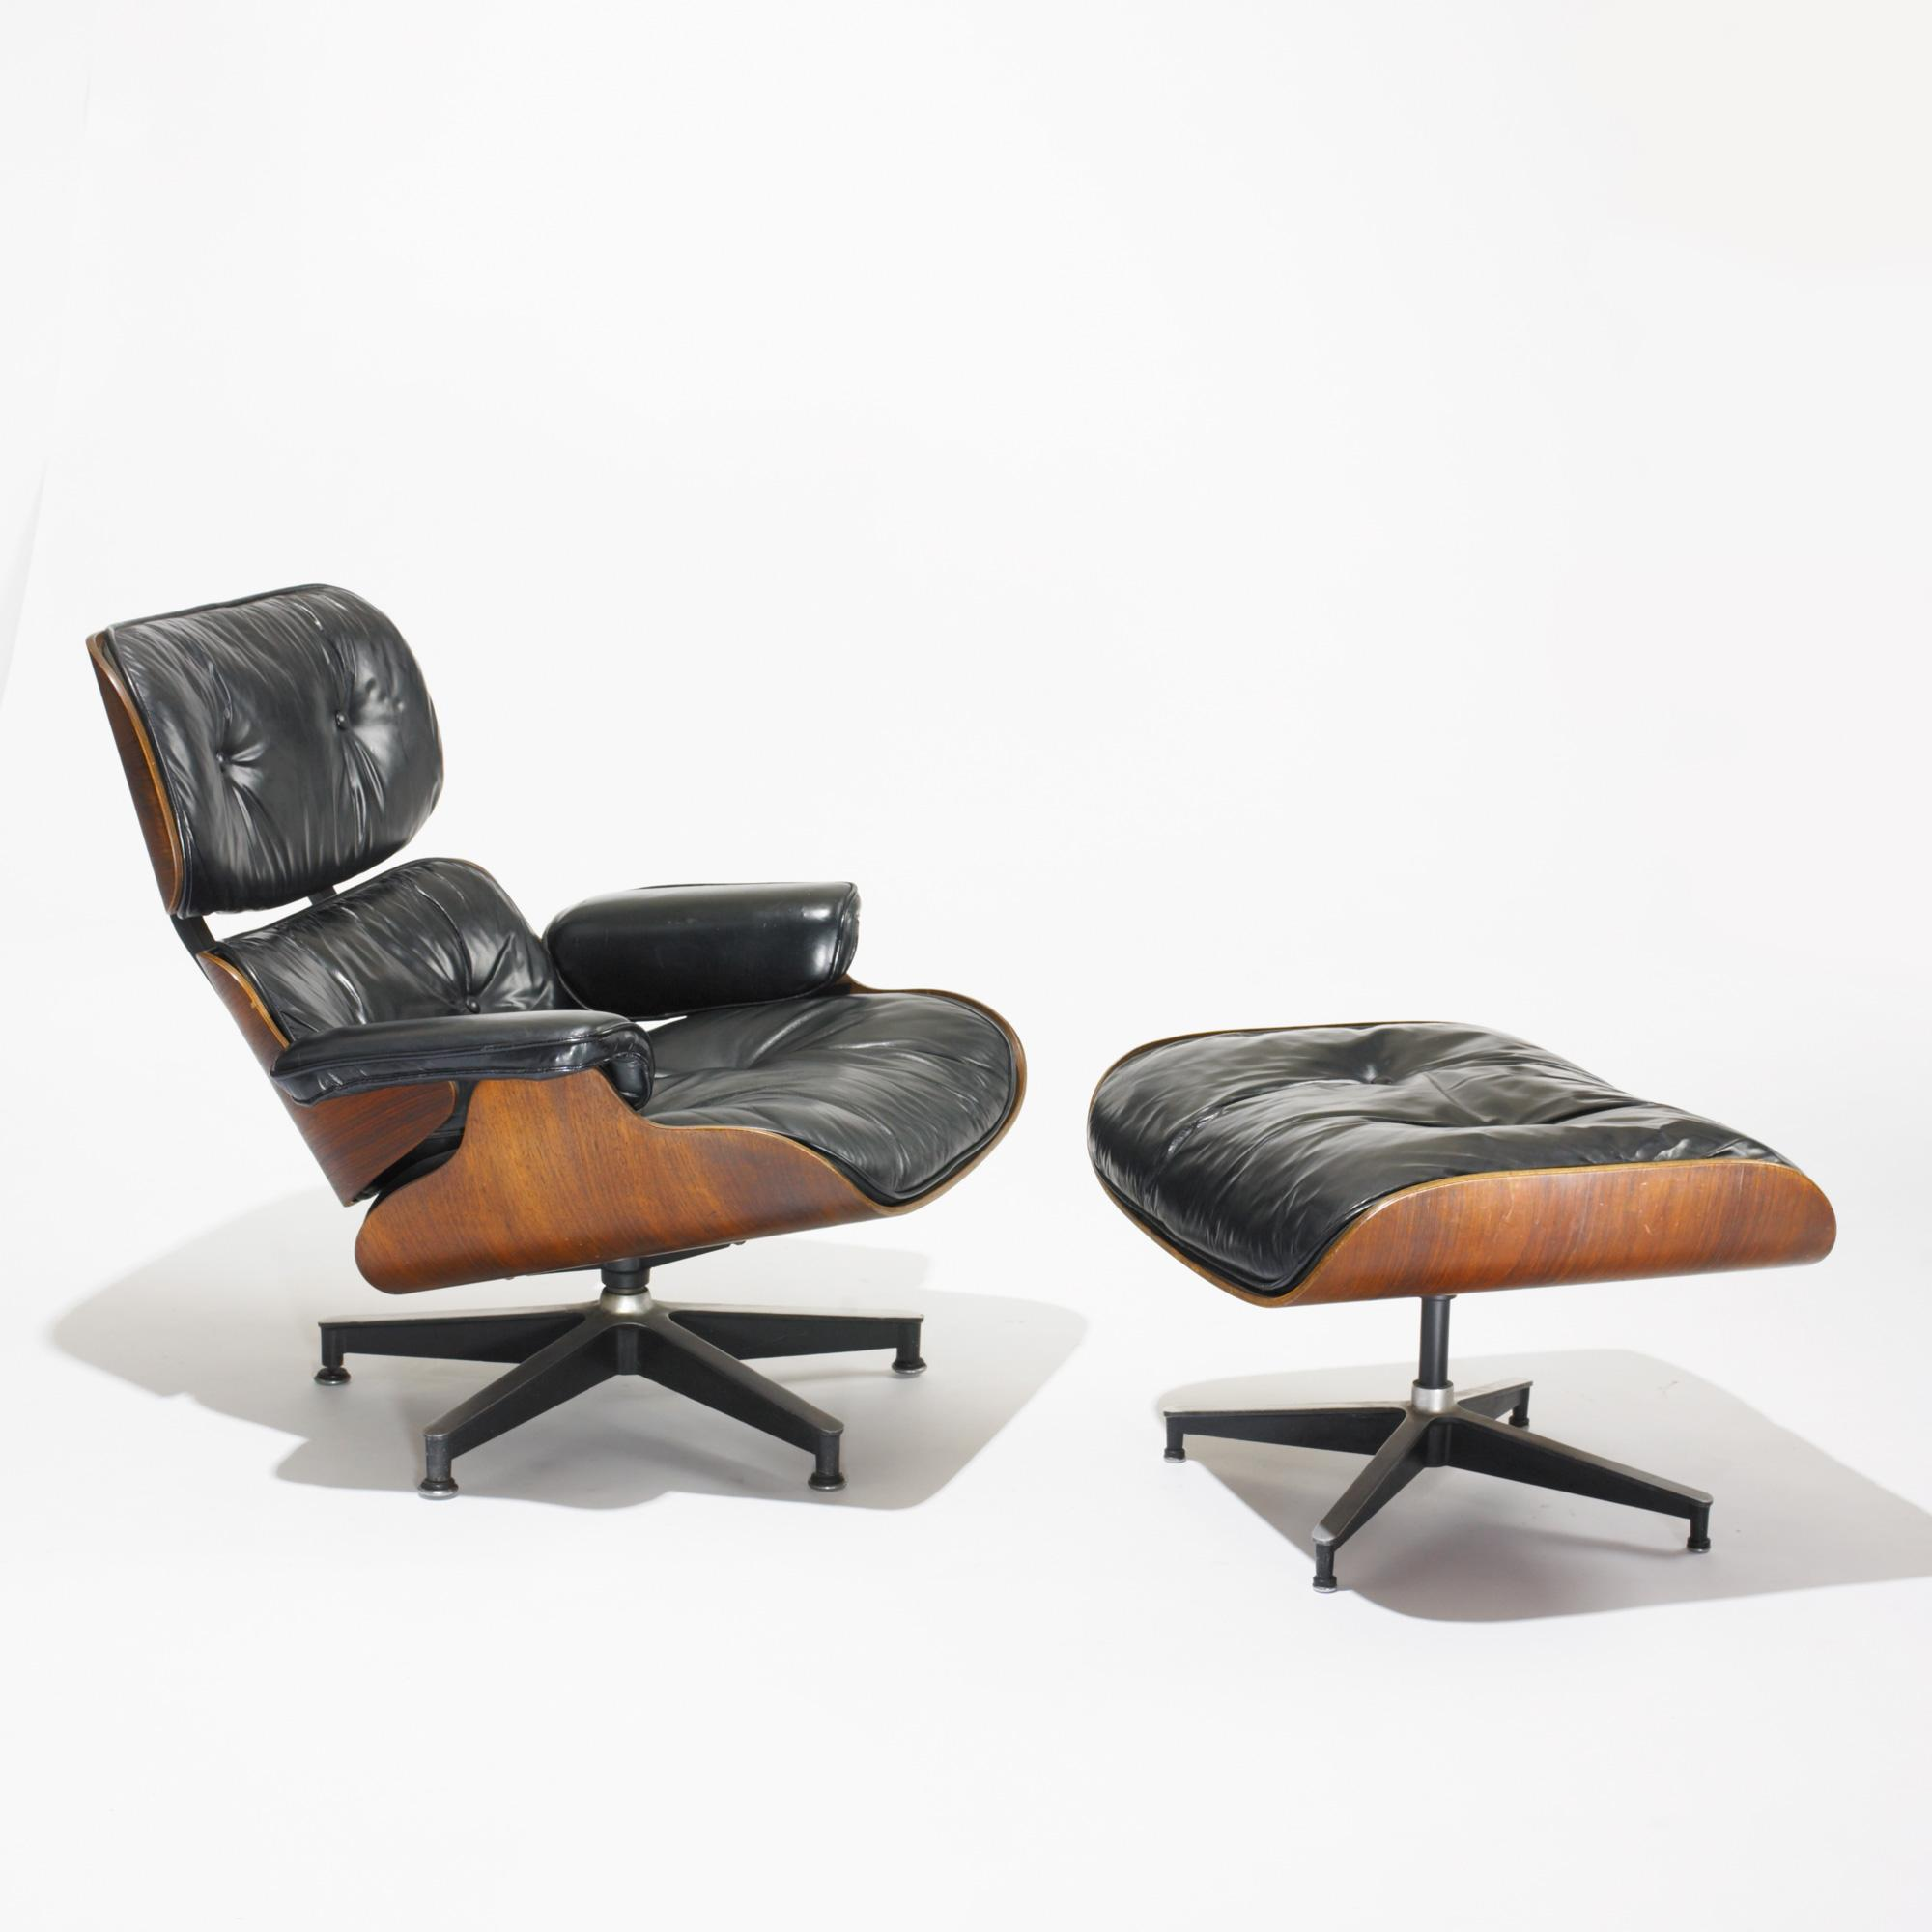 charles and ray eames 670 lounge chair and 671 ottoman. Black Bedroom Furniture Sets. Home Design Ideas